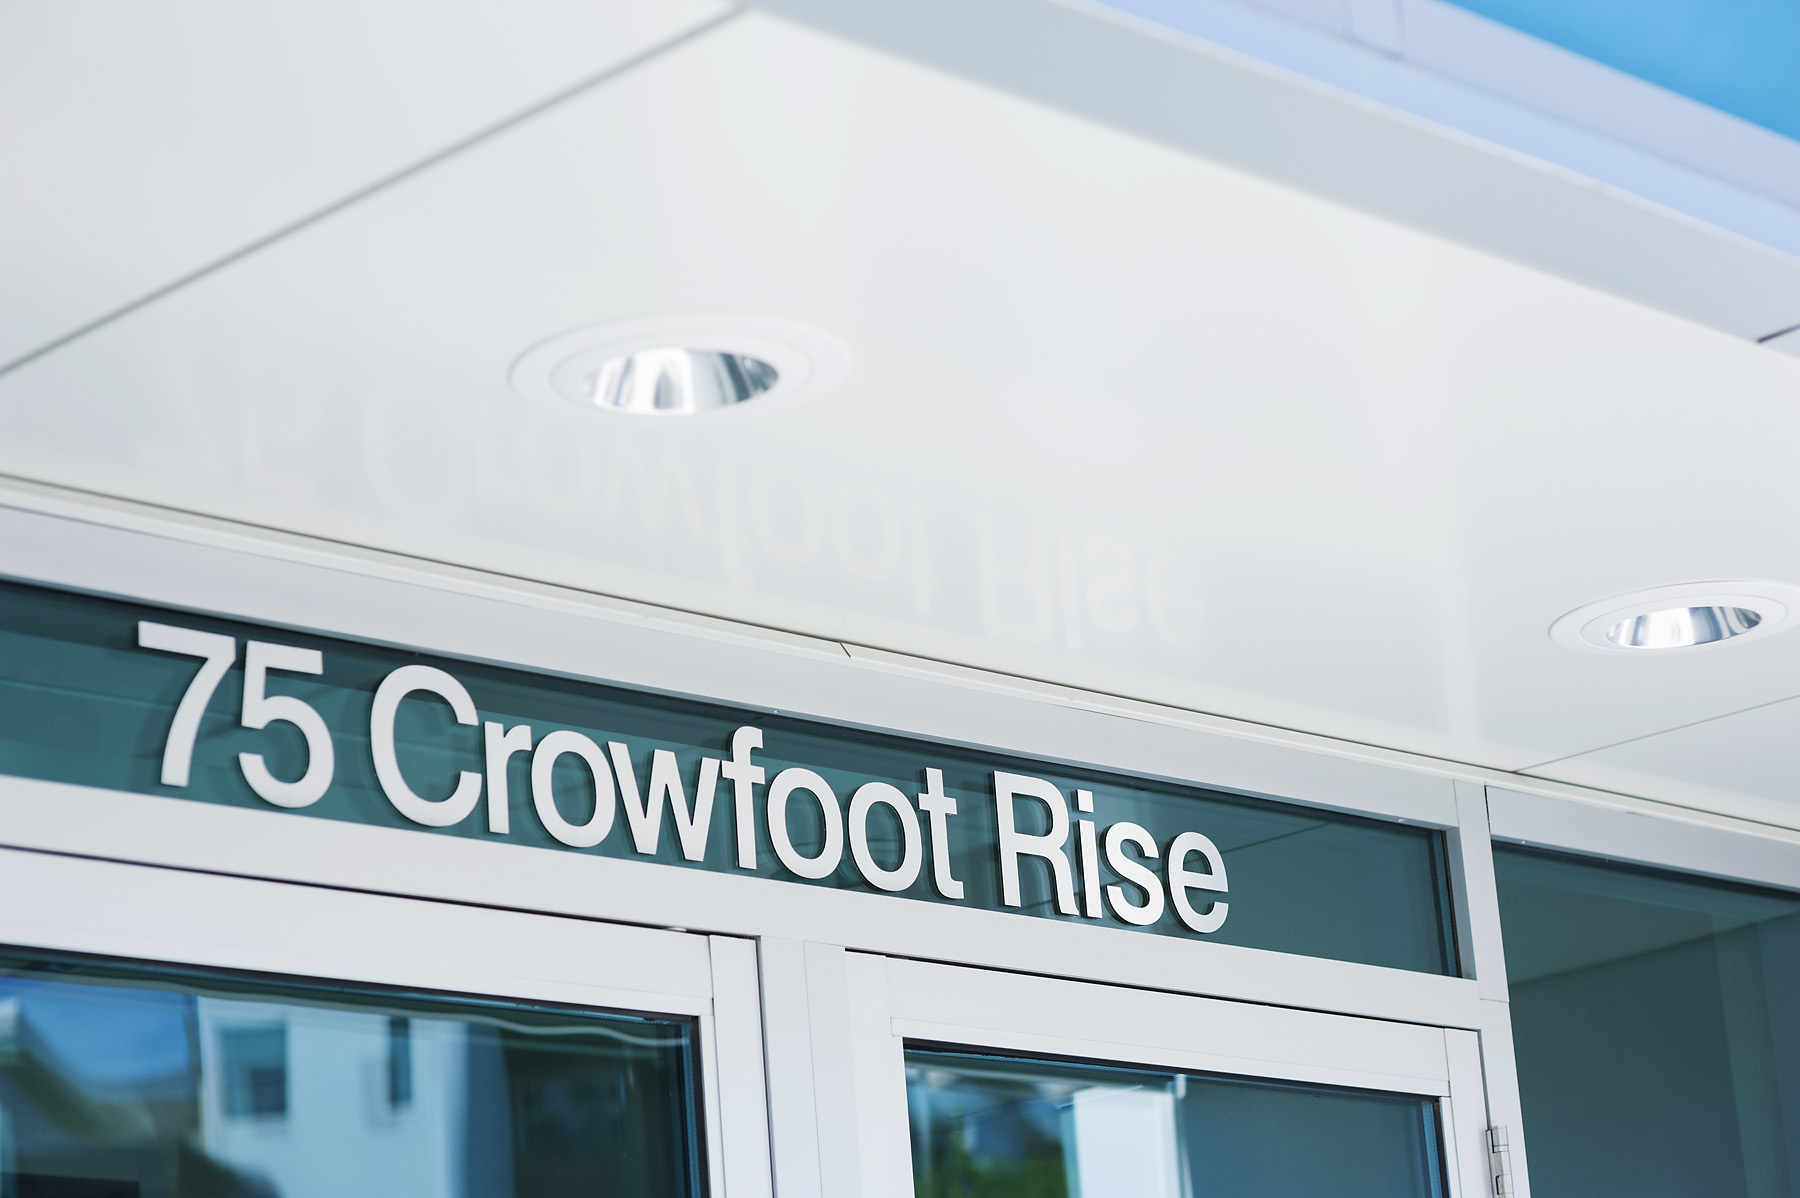 Crowfoot 75 by Telsec Group